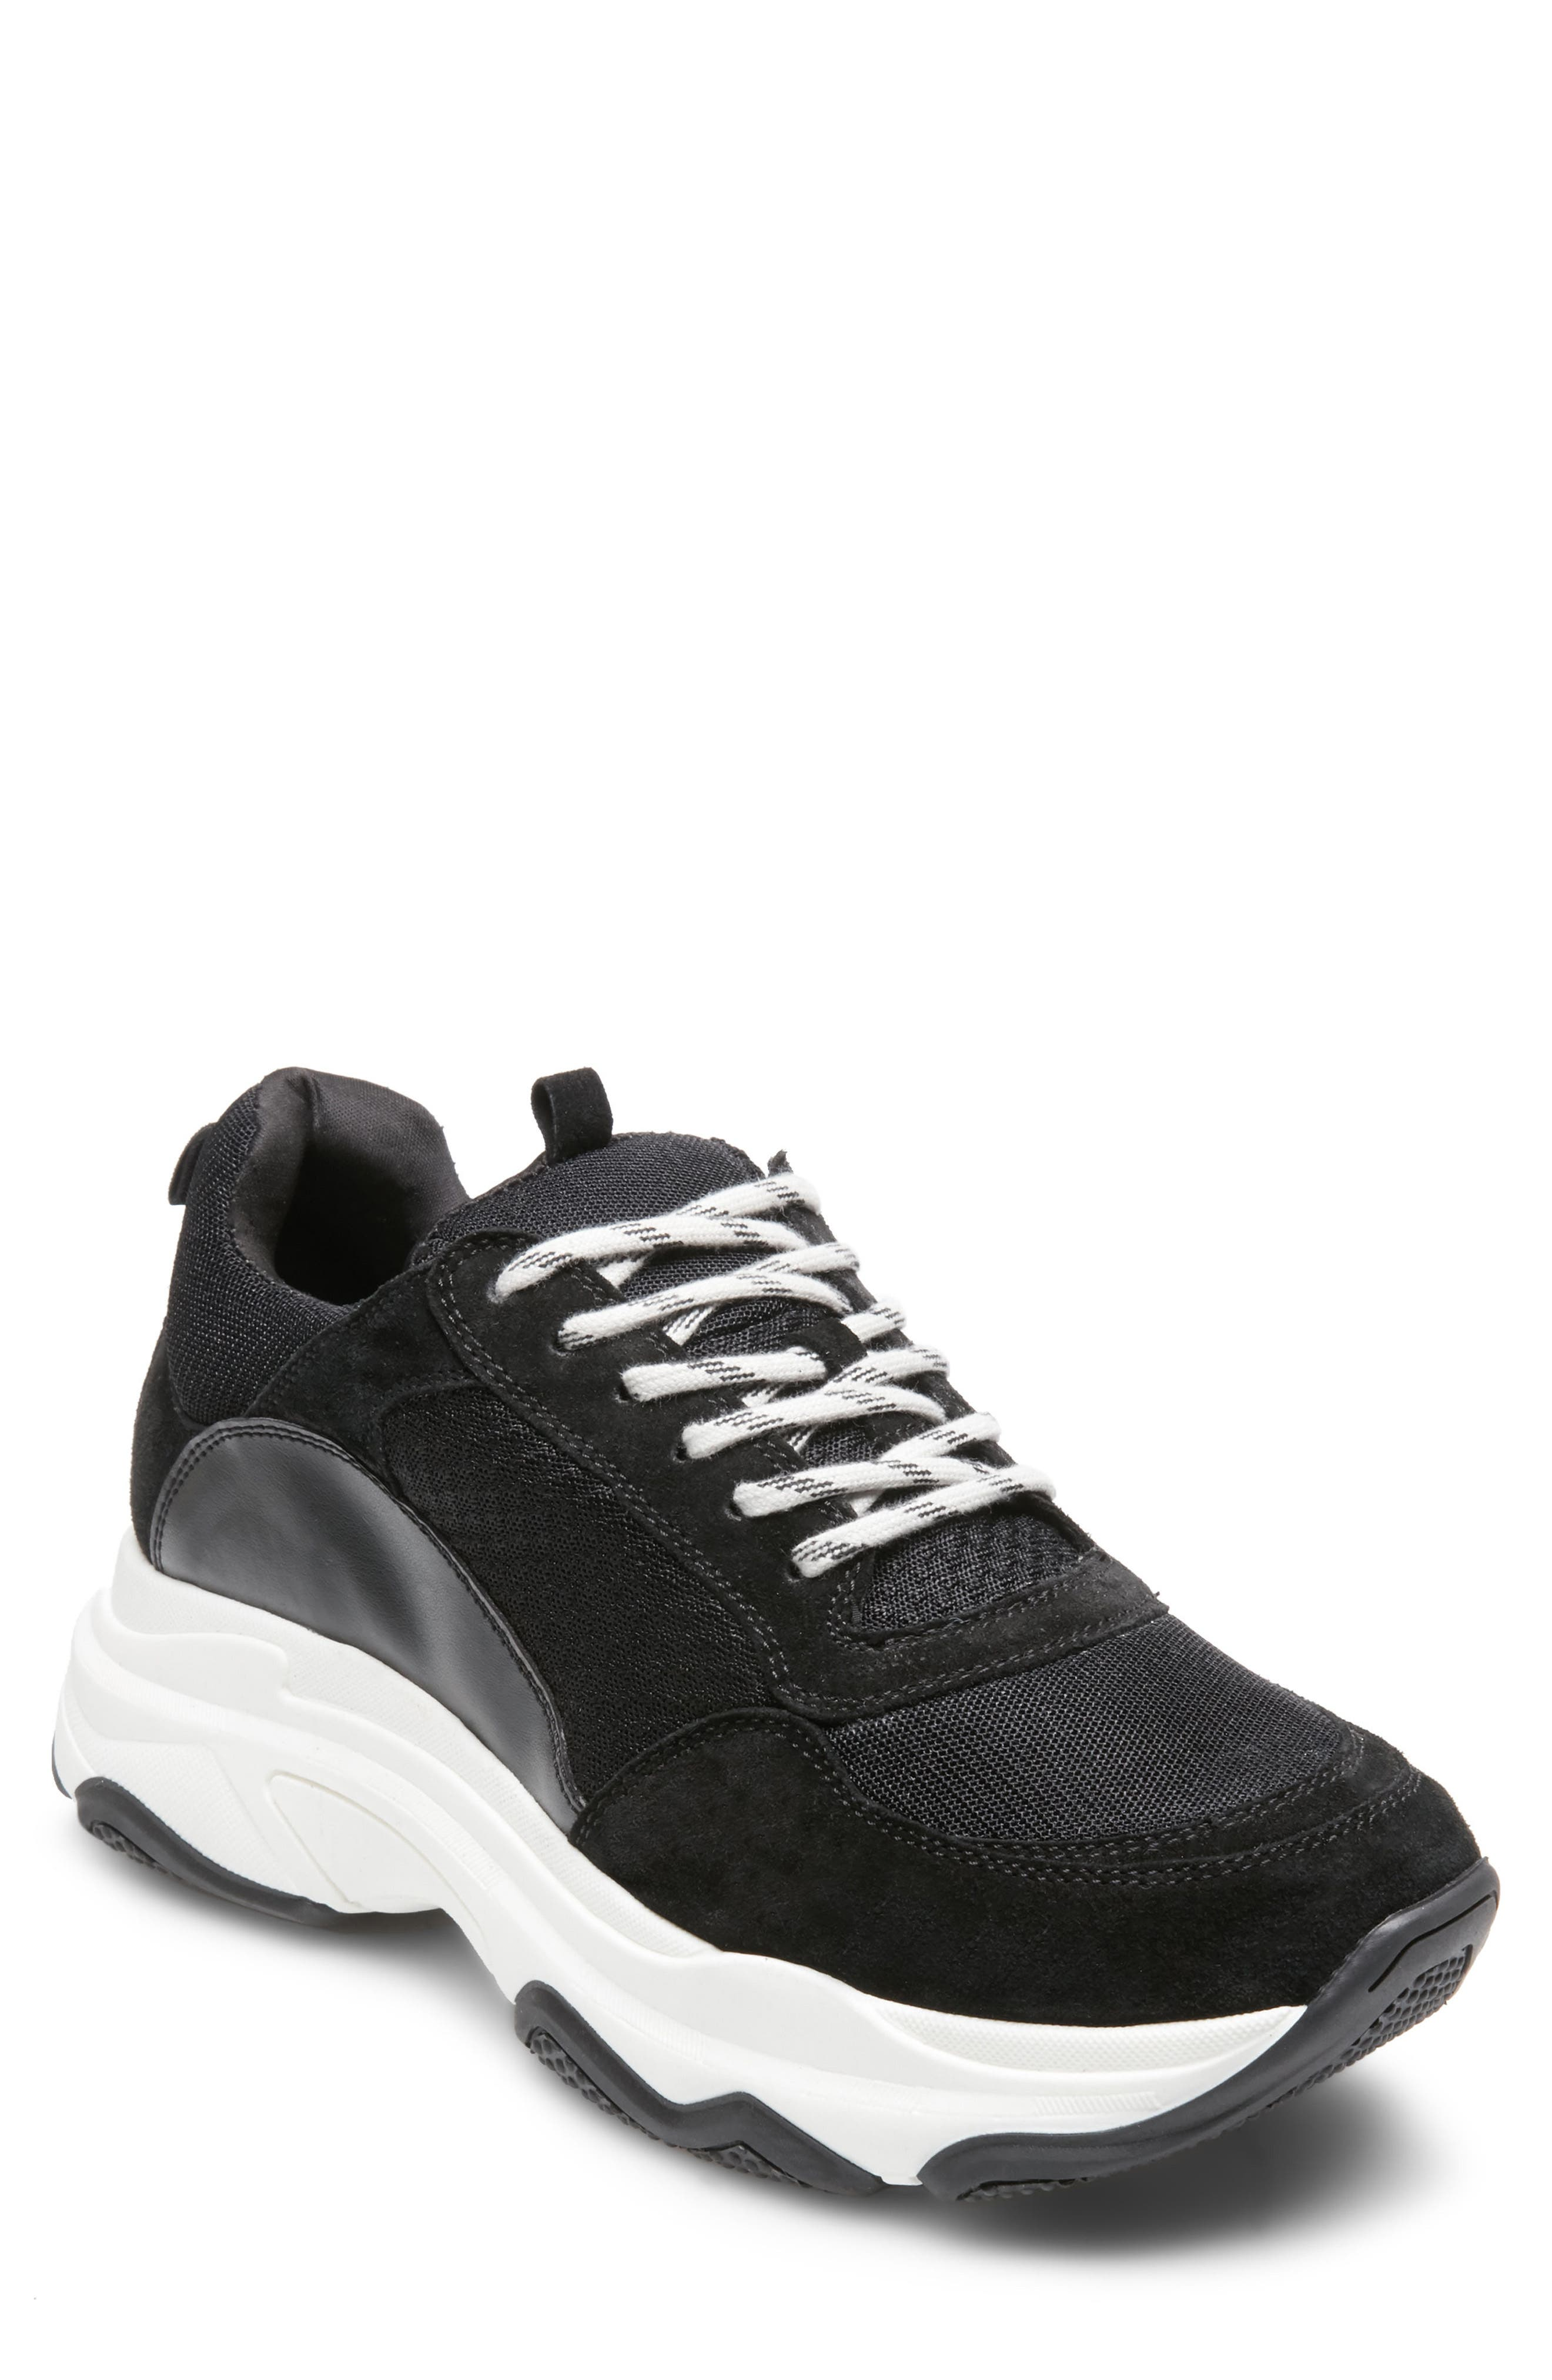 Russell Platform Sneaker,                             Main thumbnail 1, color,                             Black Leather